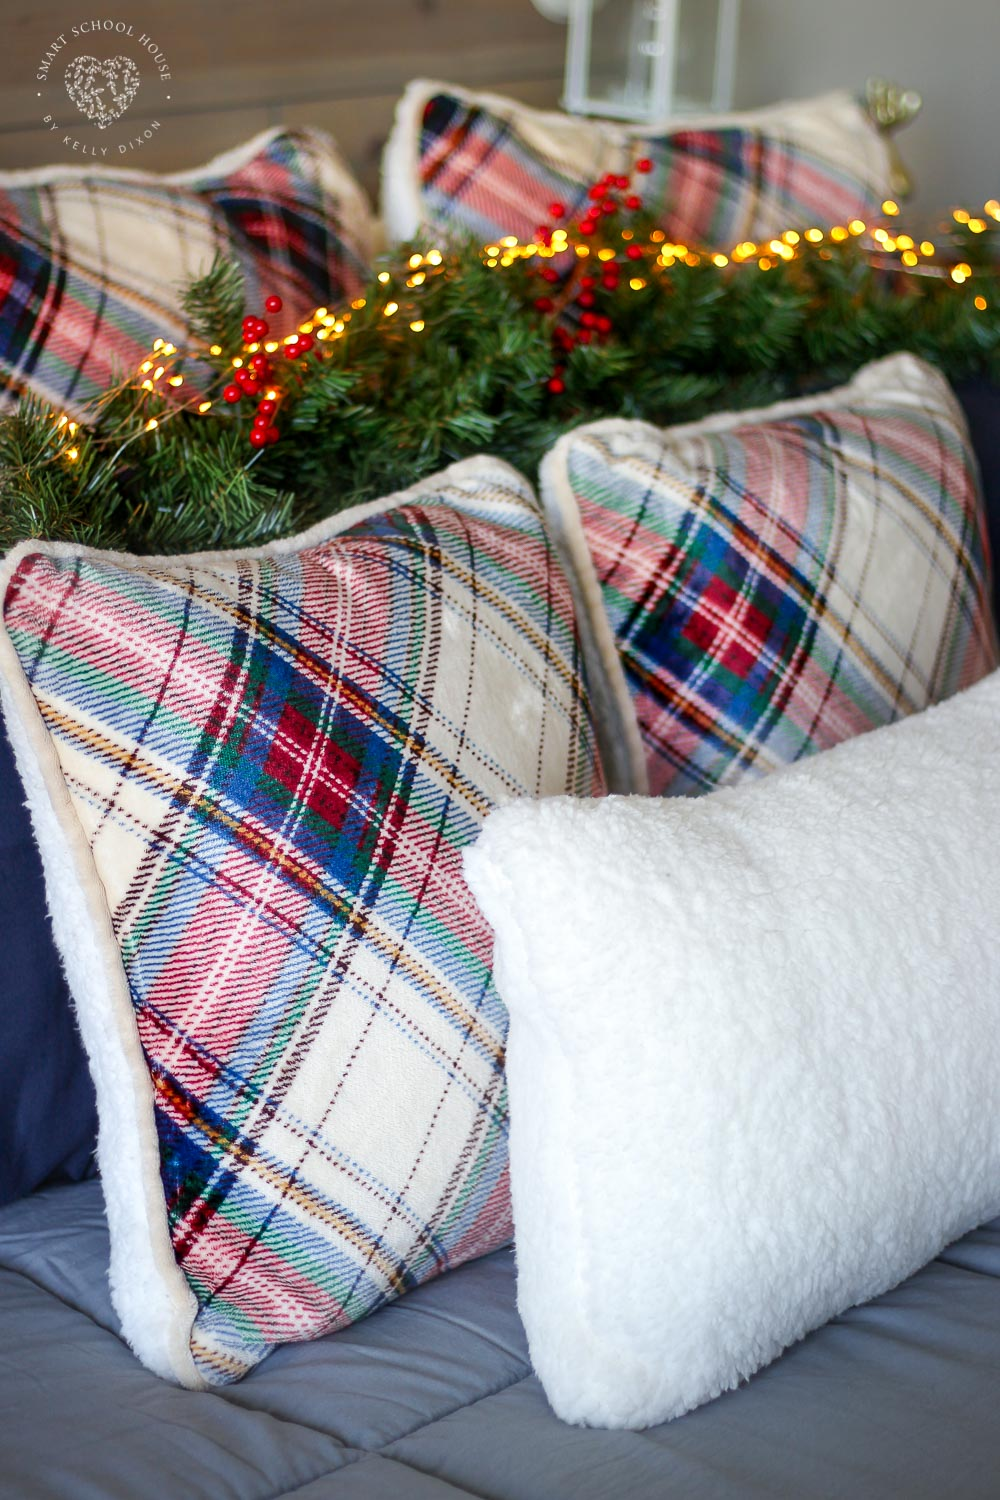 How to decorate a bed for the holidays. Plaid pillows, garland, lanterns, and fairy lights. Cozy Holiday Bedding.